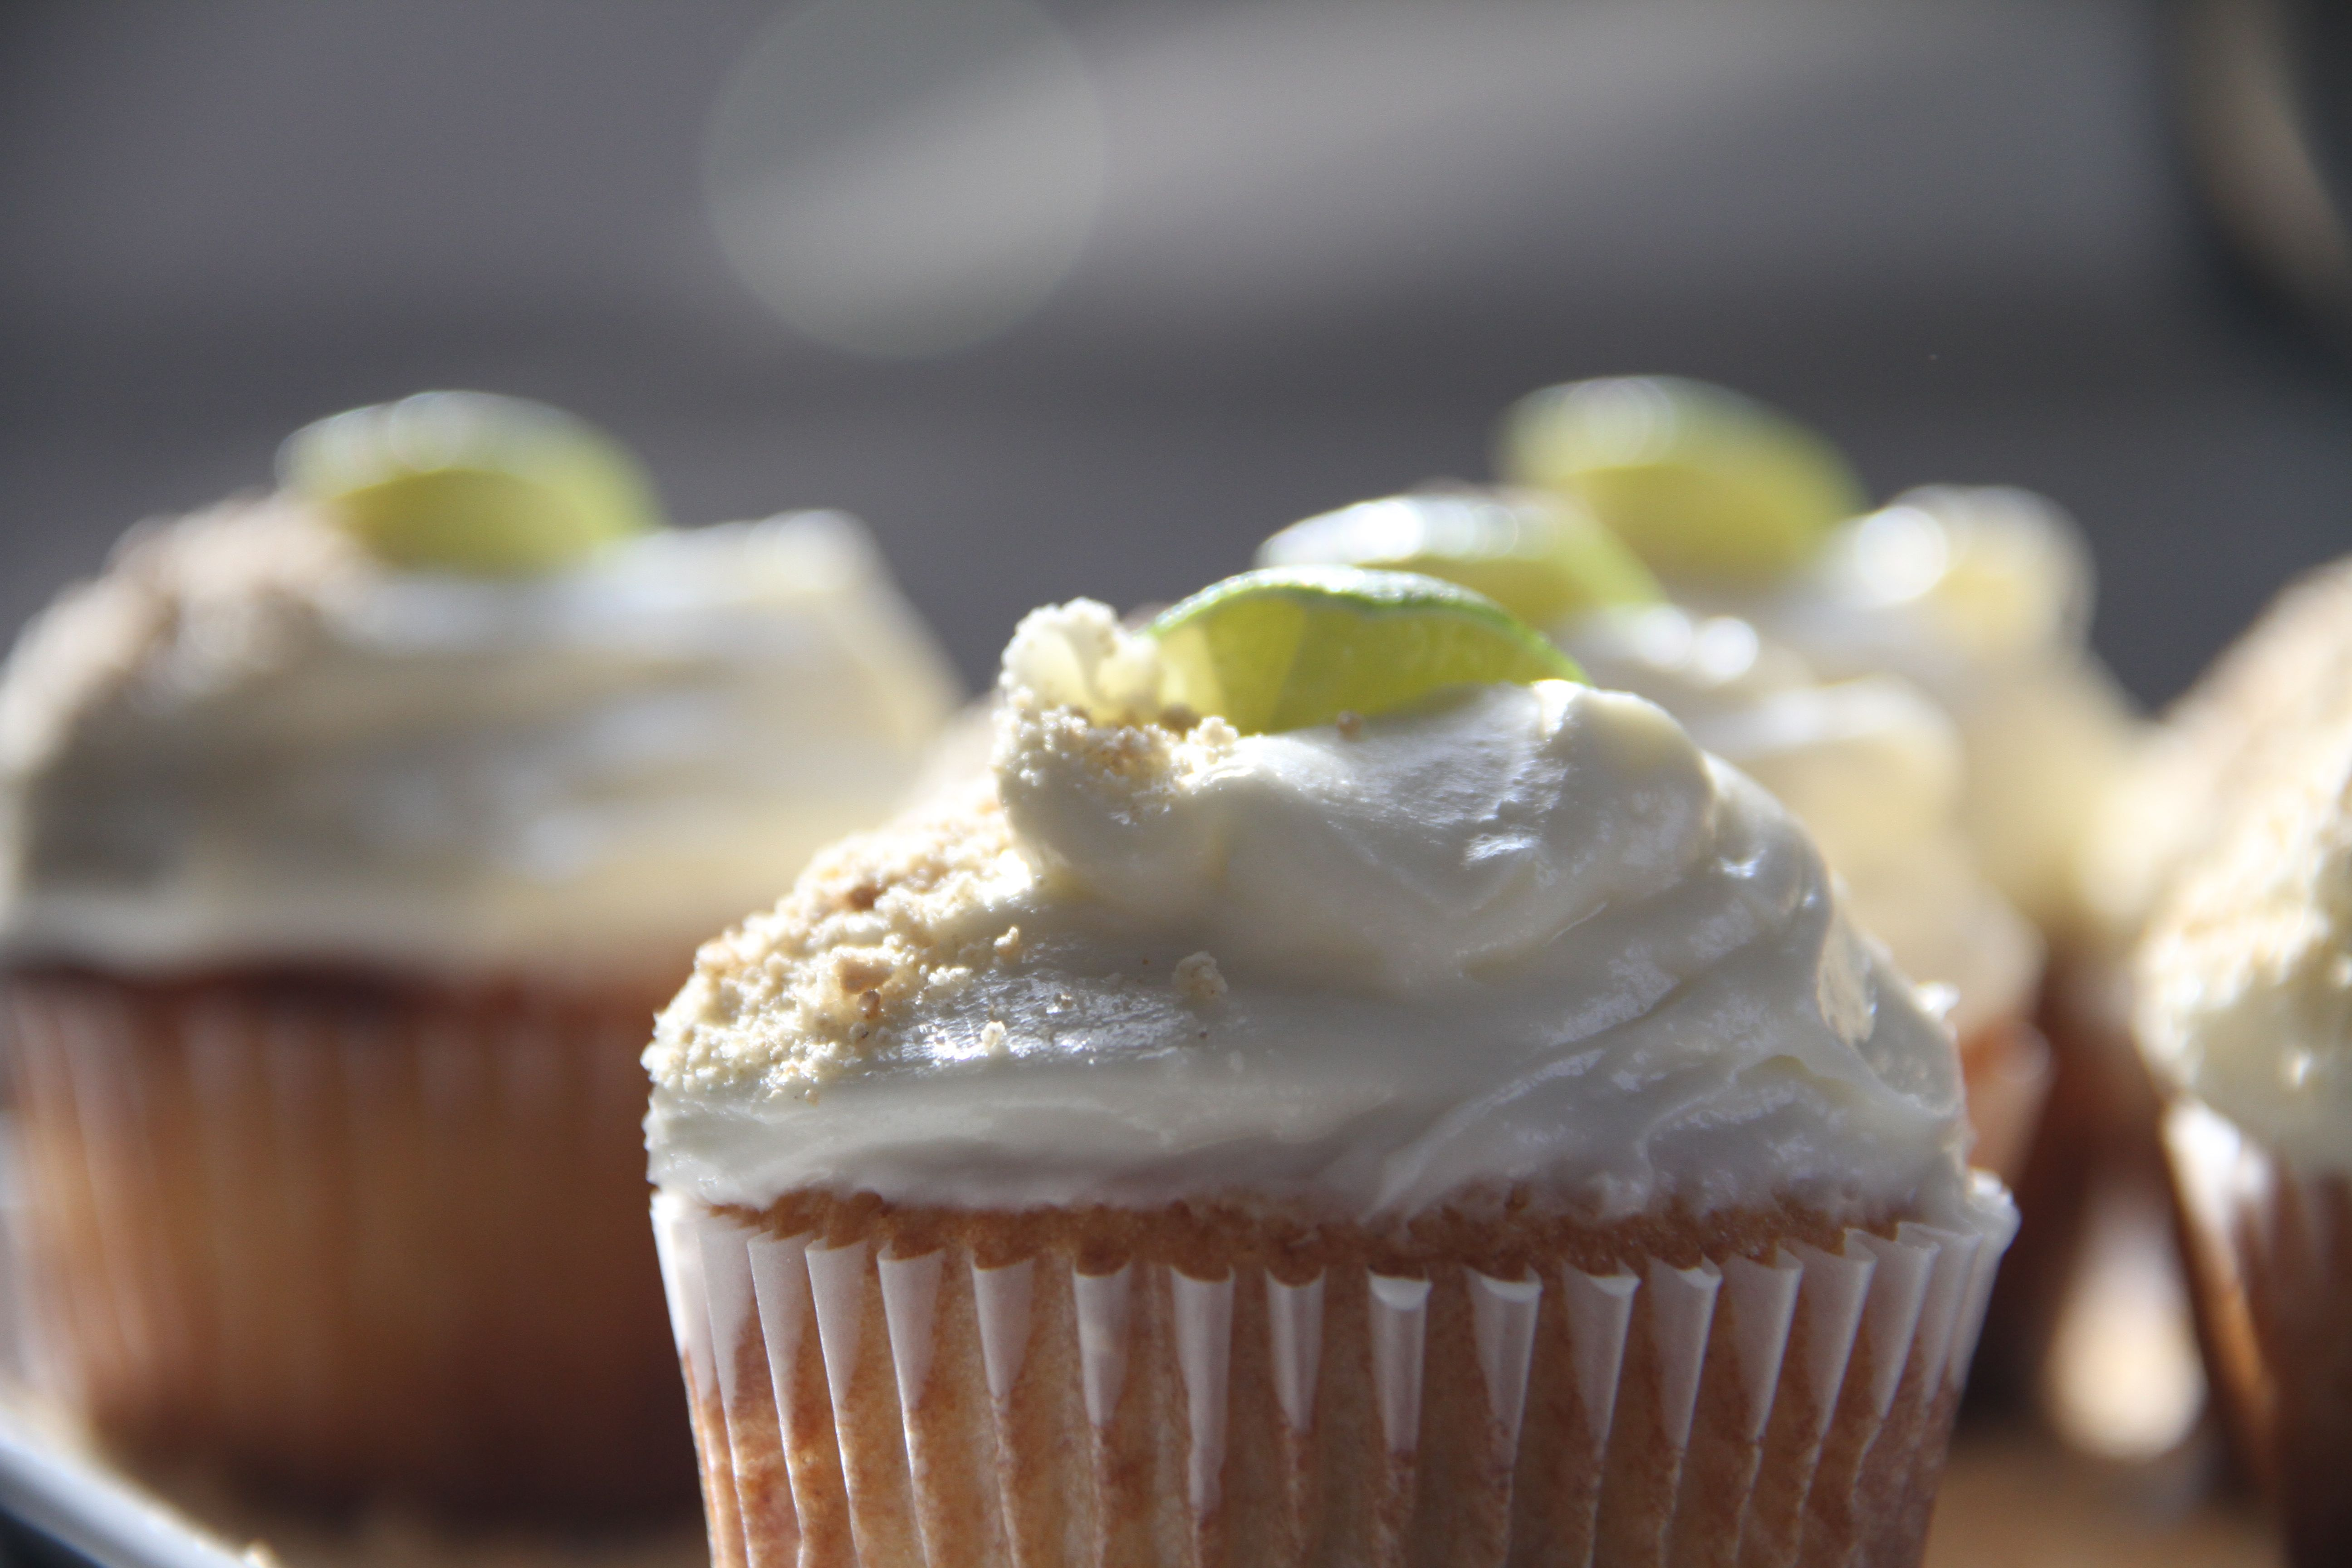 I'm telling you. Make these. You will not be sorry. Happy cupcaking!